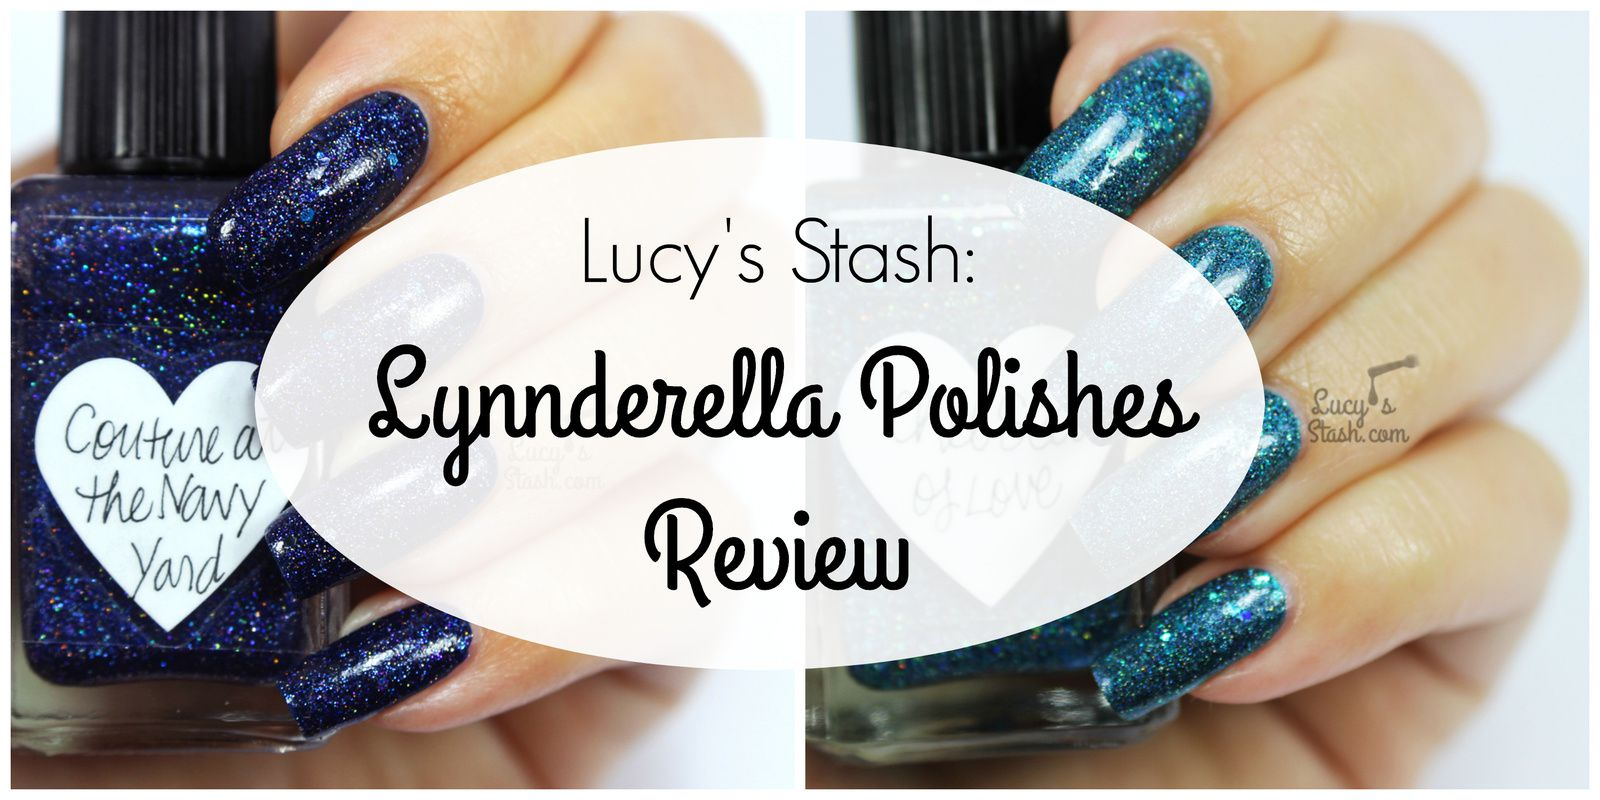 Lynnderella Couture at the Navy Yard and ChelSea of Love - Review &amp&#x3B; Swatches